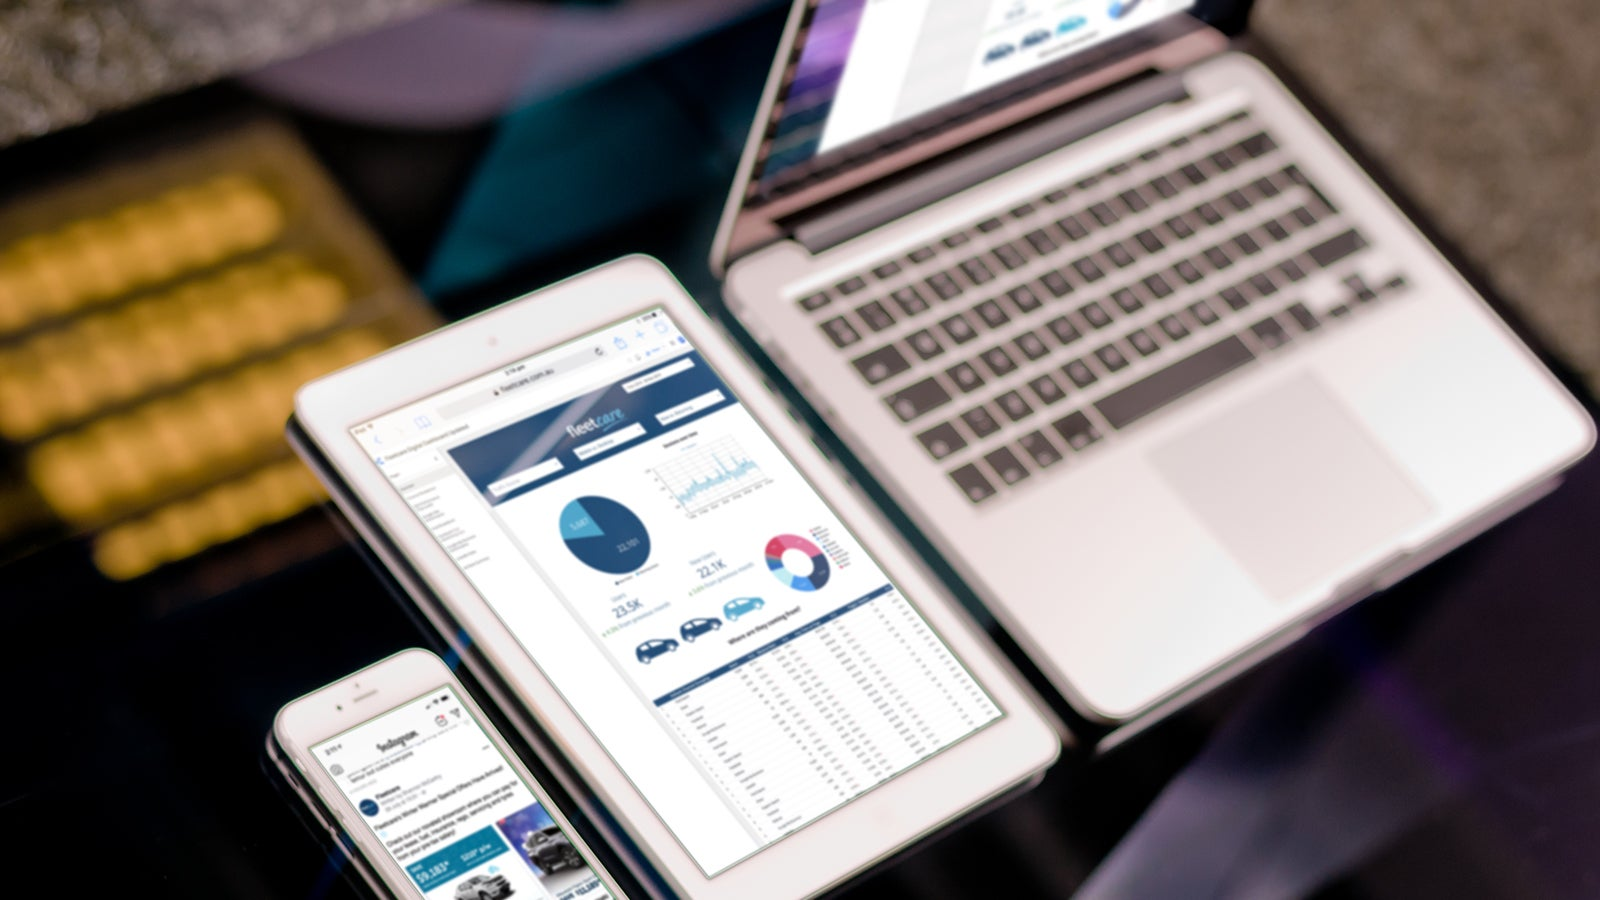 Fleetcare | Fleetcare marketing analytics dashboard on mobile, tablet and laptop | Devotion